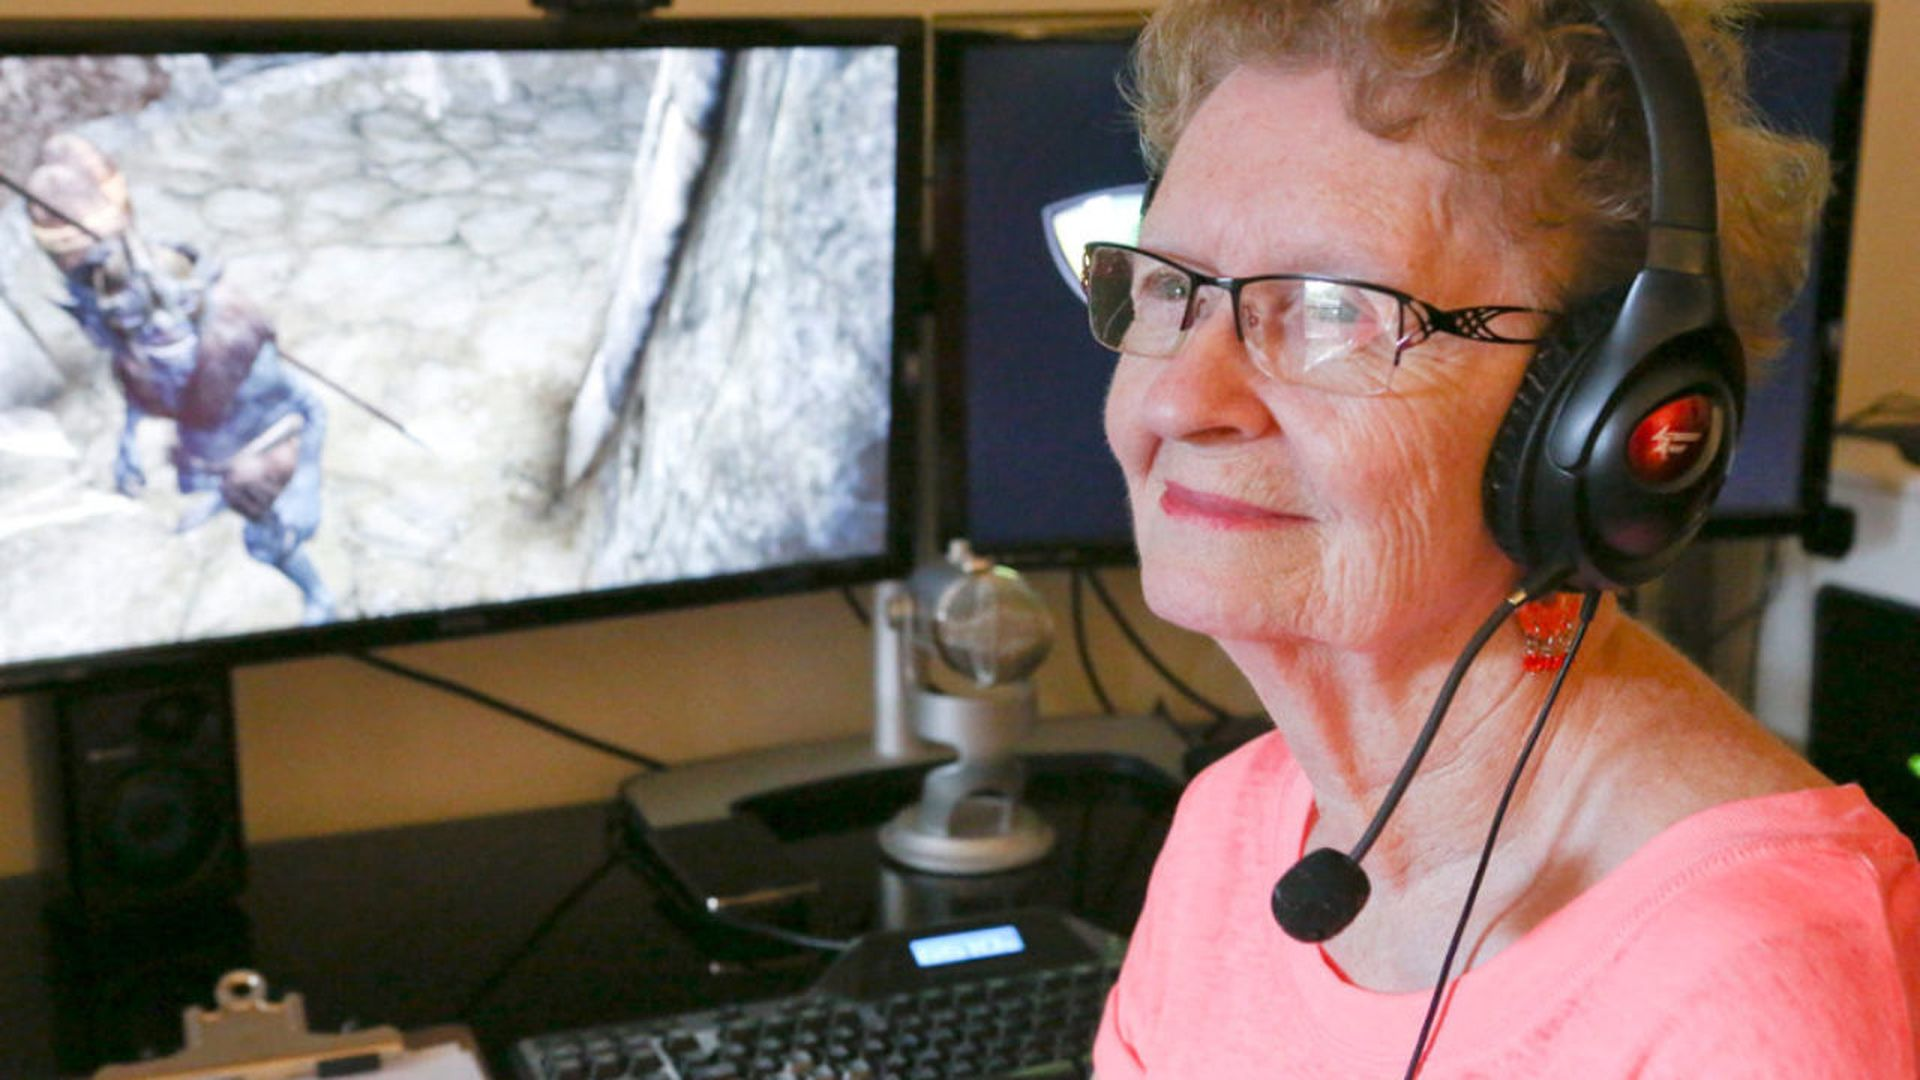 YouTuber Skyrim Grandma announces she is scaling back streams for the sake of her health after receiving onslaught of patronizing comments - VG247